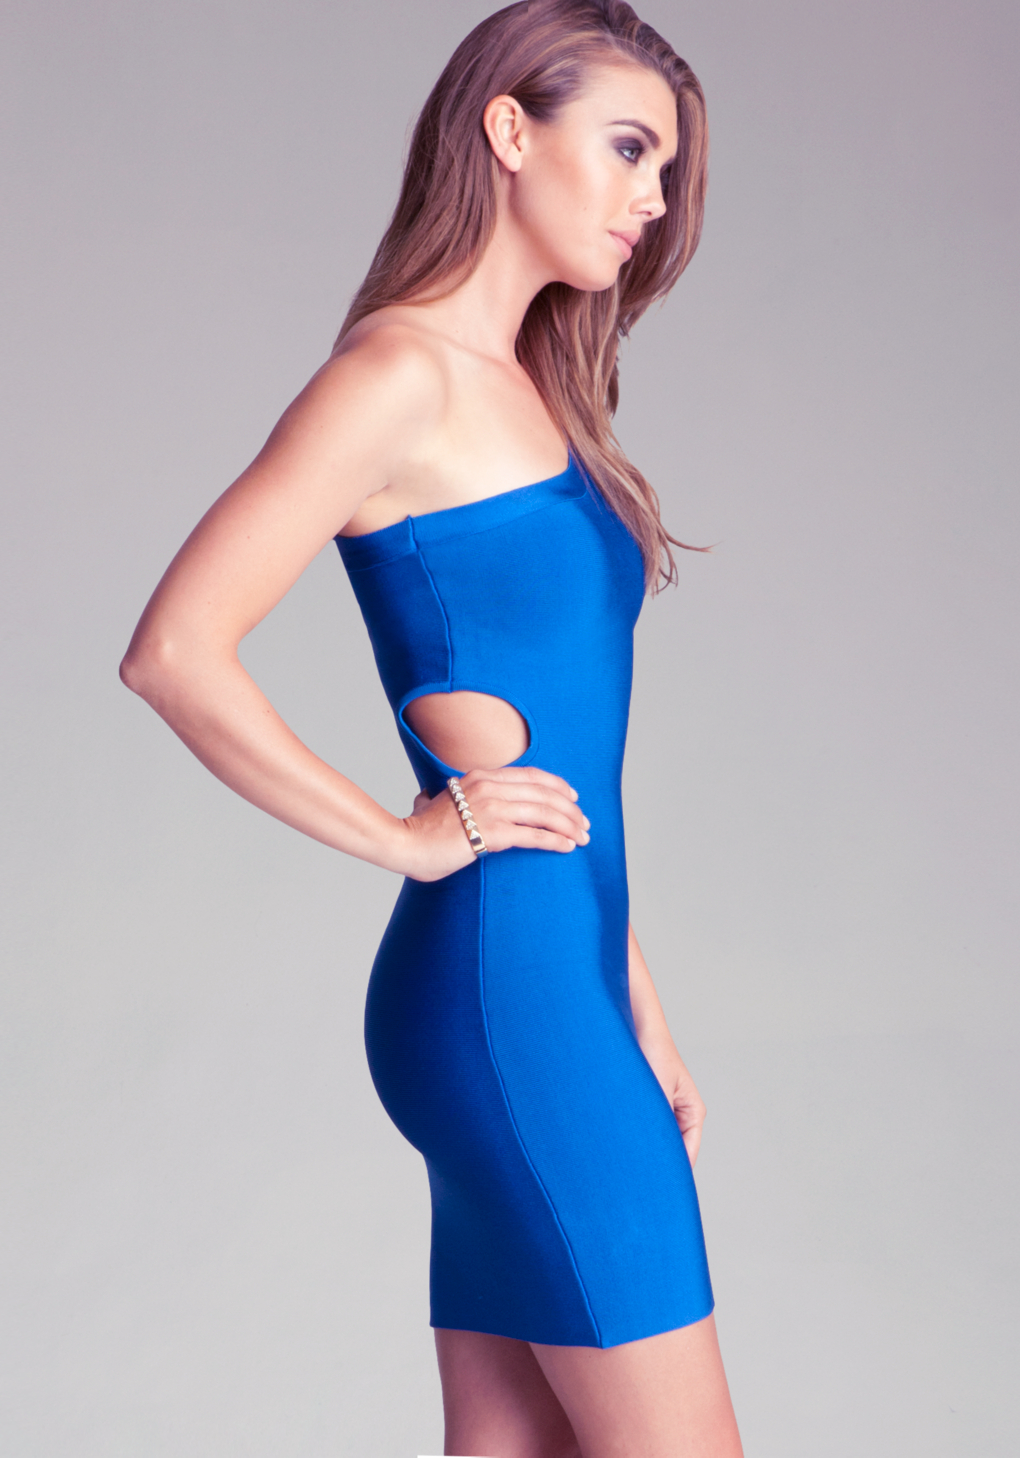 Bebe blue cut out dress